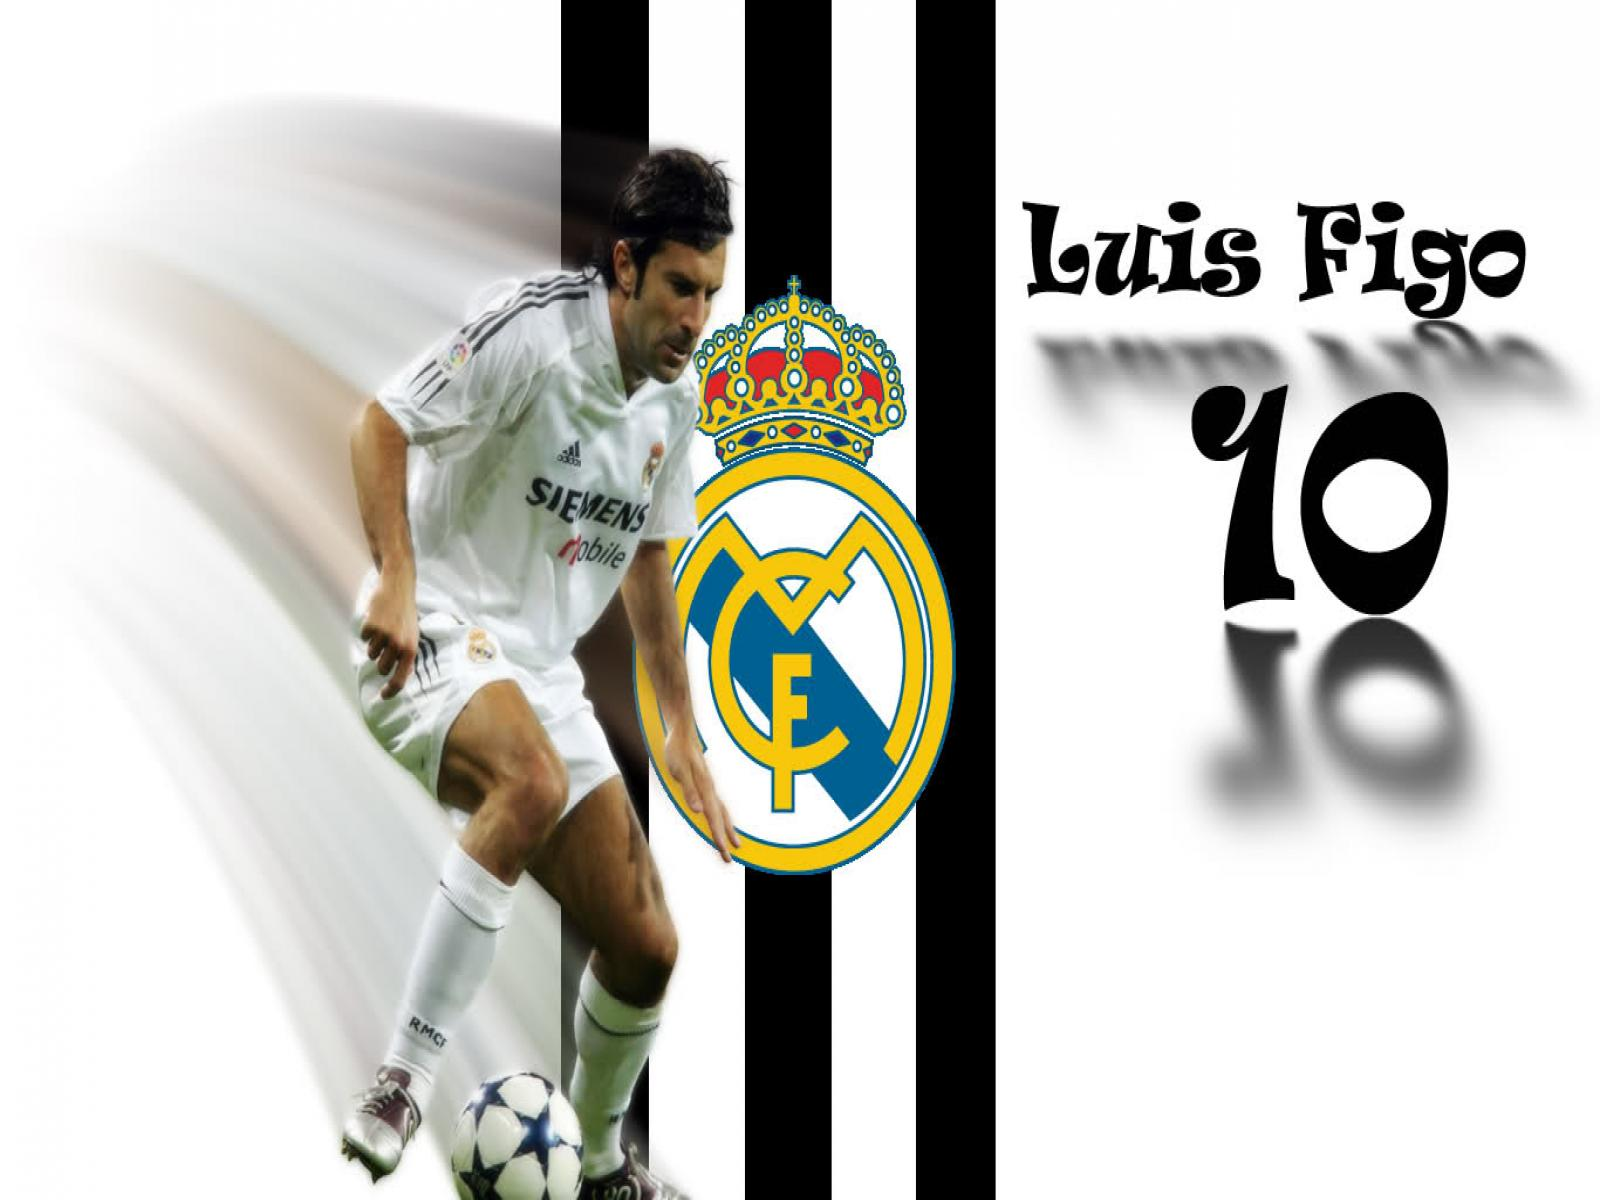 Luis Figo Wallpapers 1366x768 px 96ZDB62 WallpapersExpertcom 1600x1200